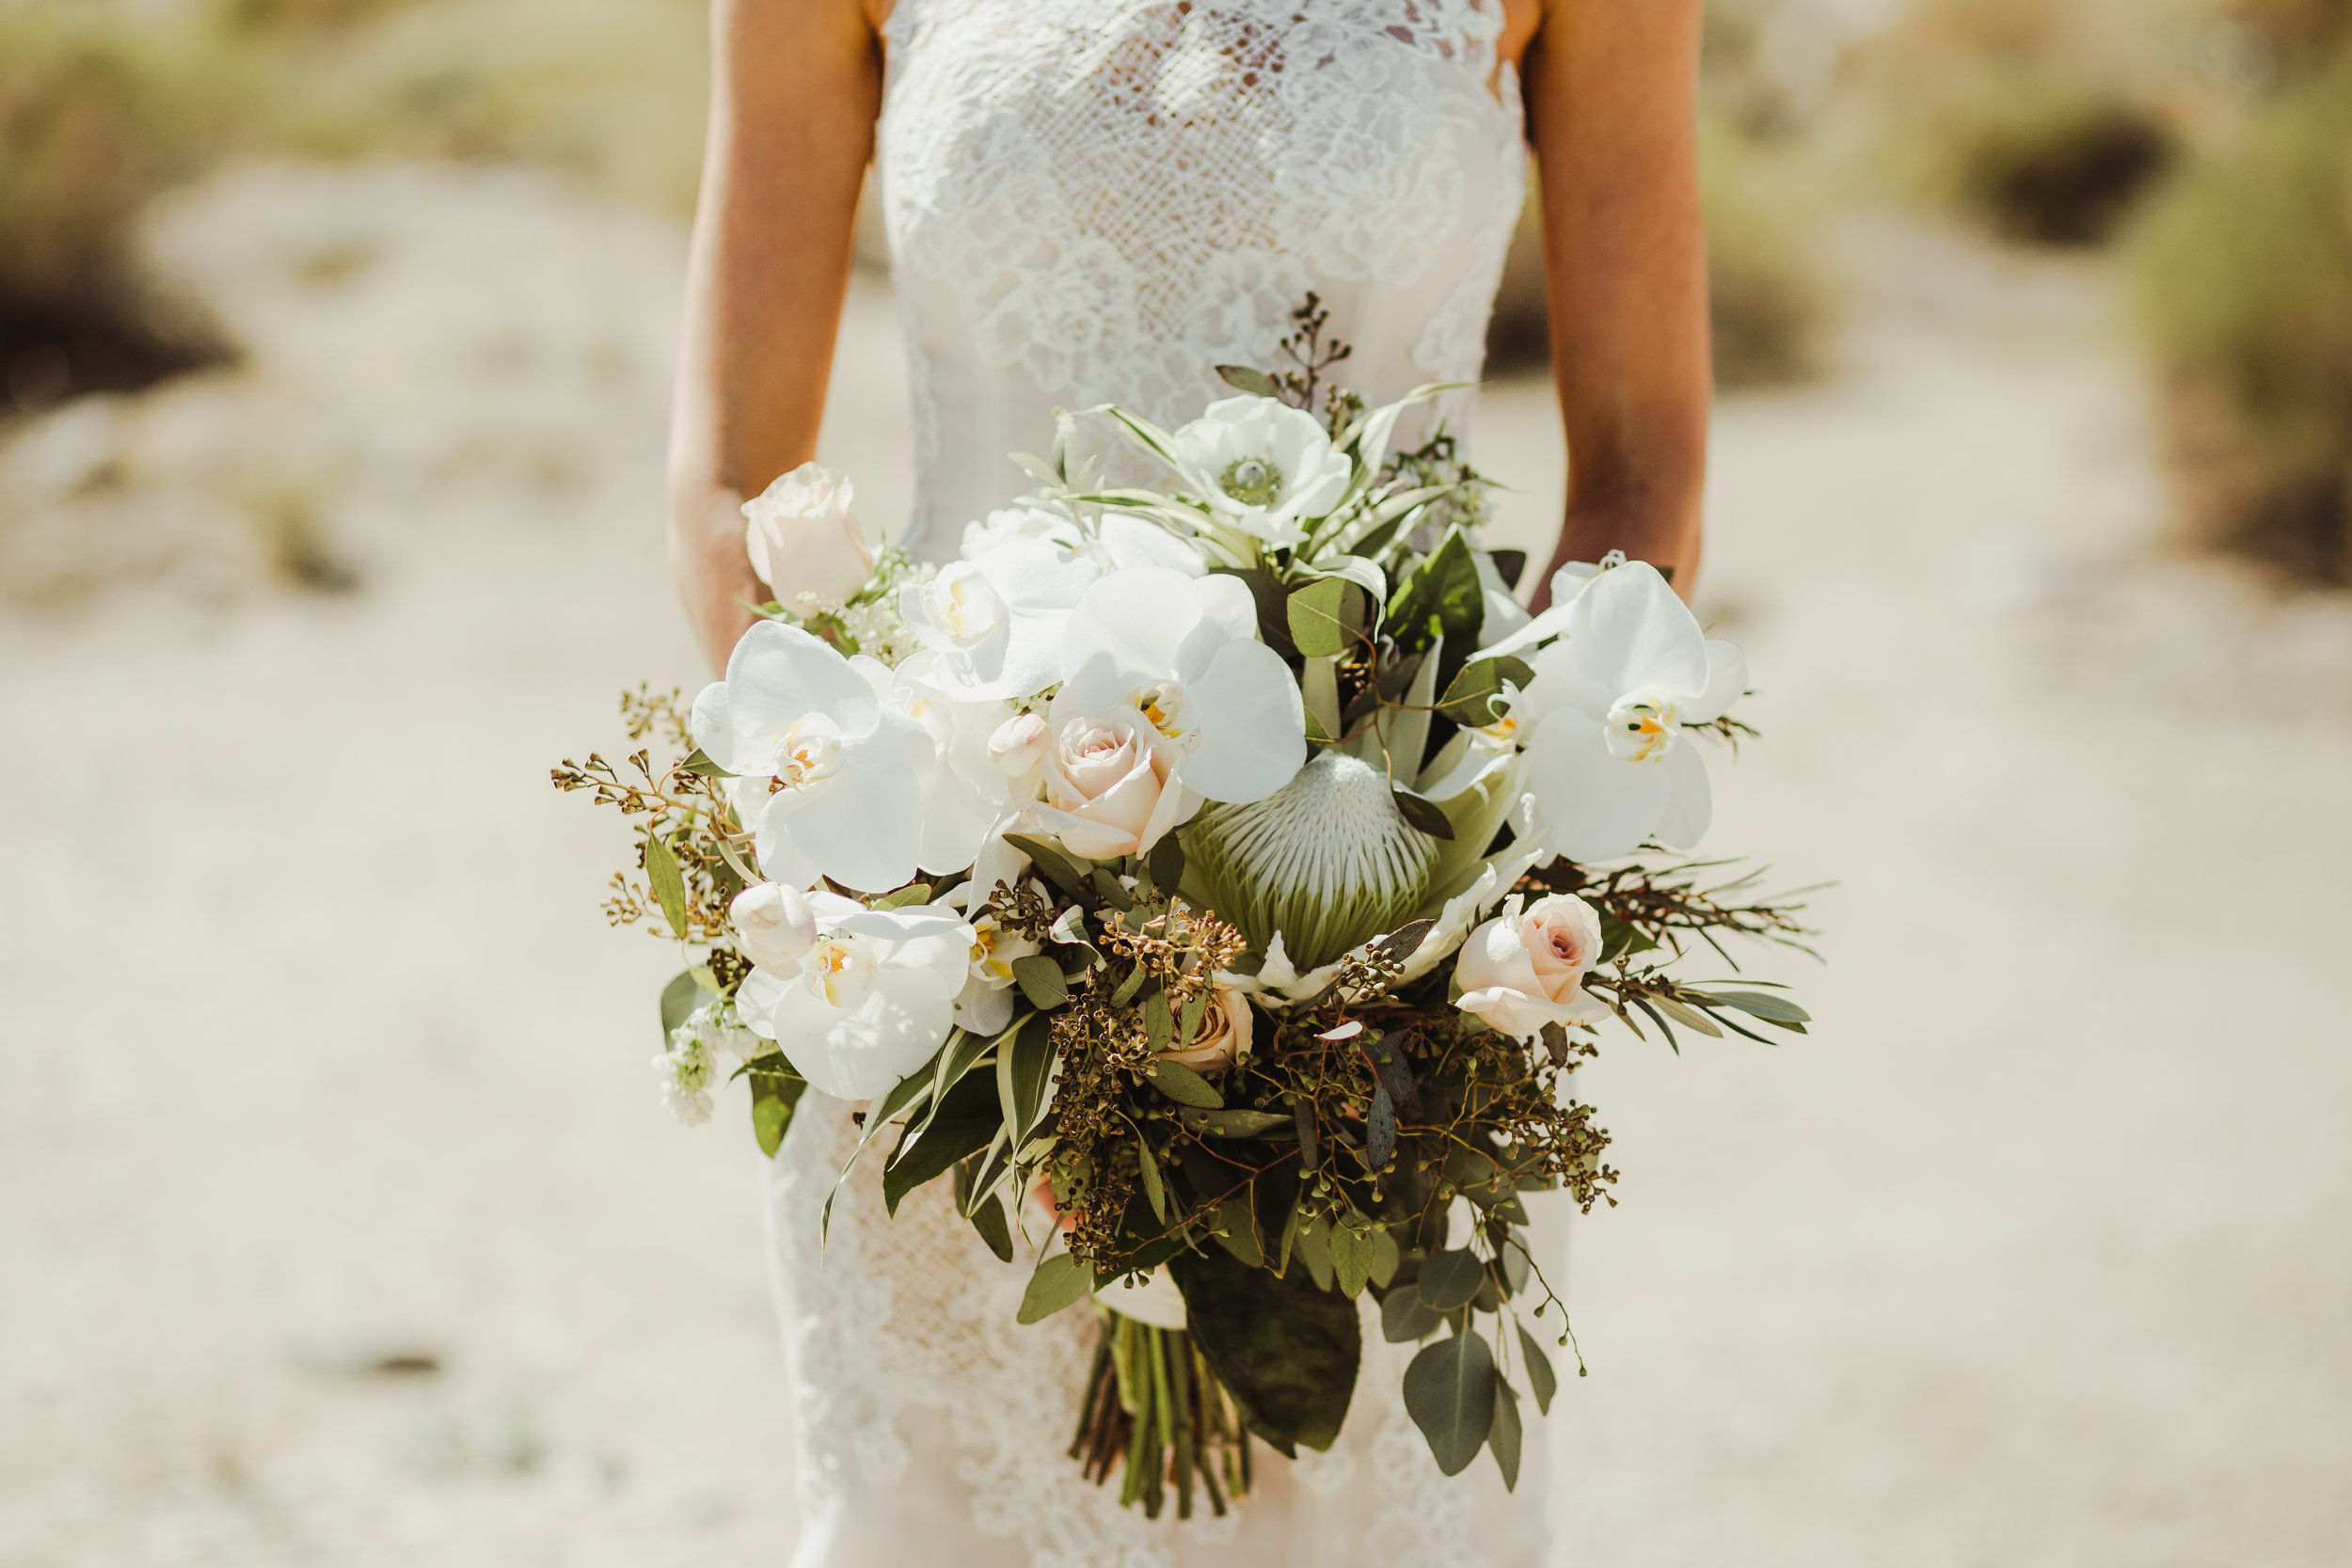 Vaso Bello bouquet photographed by  Hannah Costello Photography